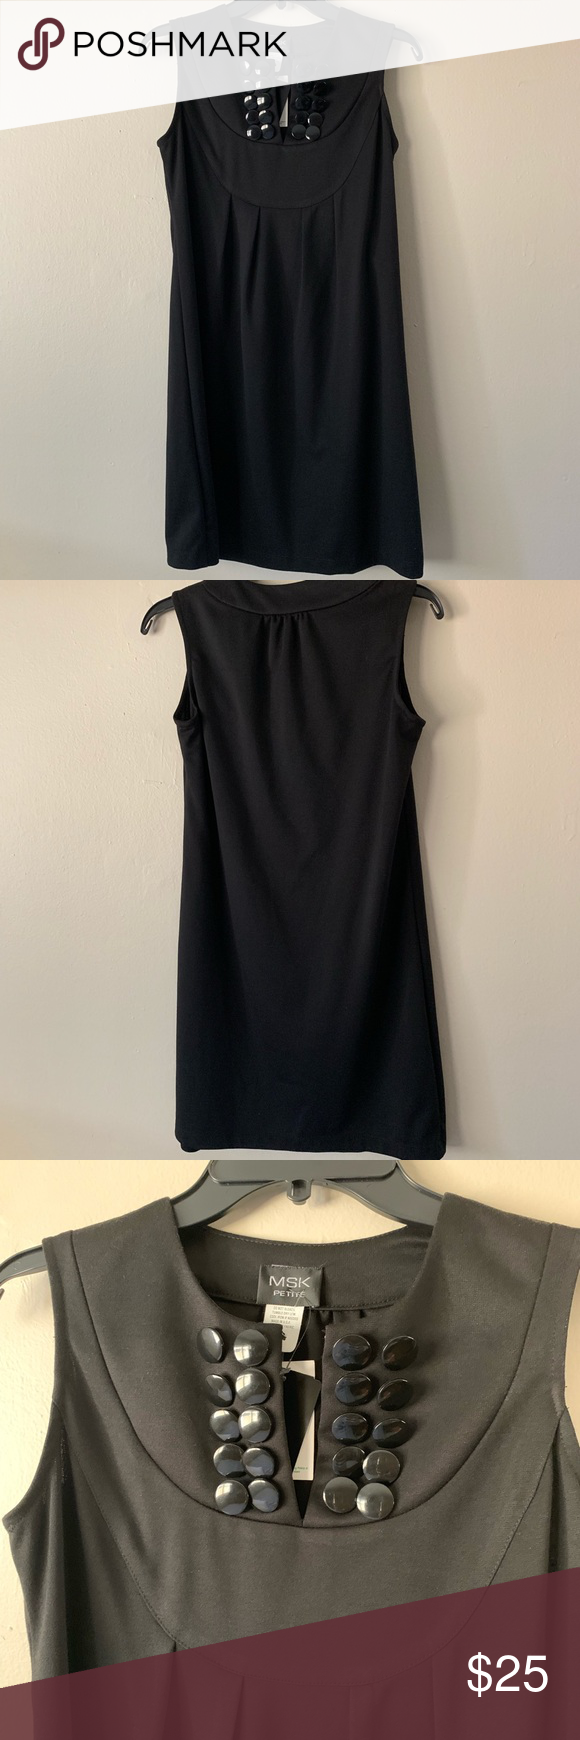 "MSK Petite Black Sleeveless Dress Clusters of black decorative buttons at front. One snap on closure at front. Baby doll style. Size 4P Approx measures armpit to armpit 17"" length from shoulder to hem 33 1/4"" MSK Dresses #blacksleevelessdress"